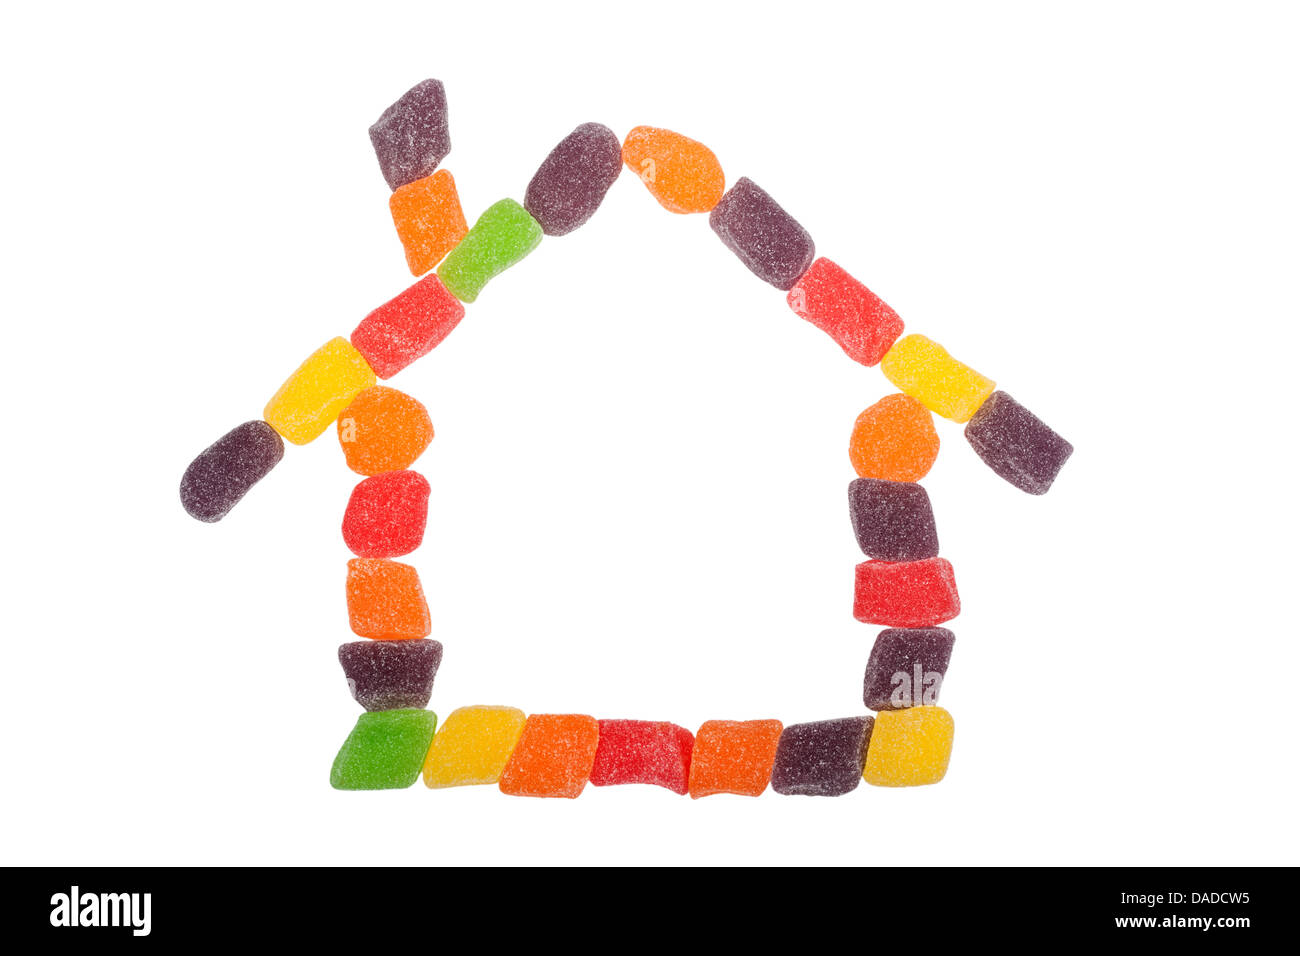 Pieces of candy forming the shape of a house isolated on white background - Stock Image